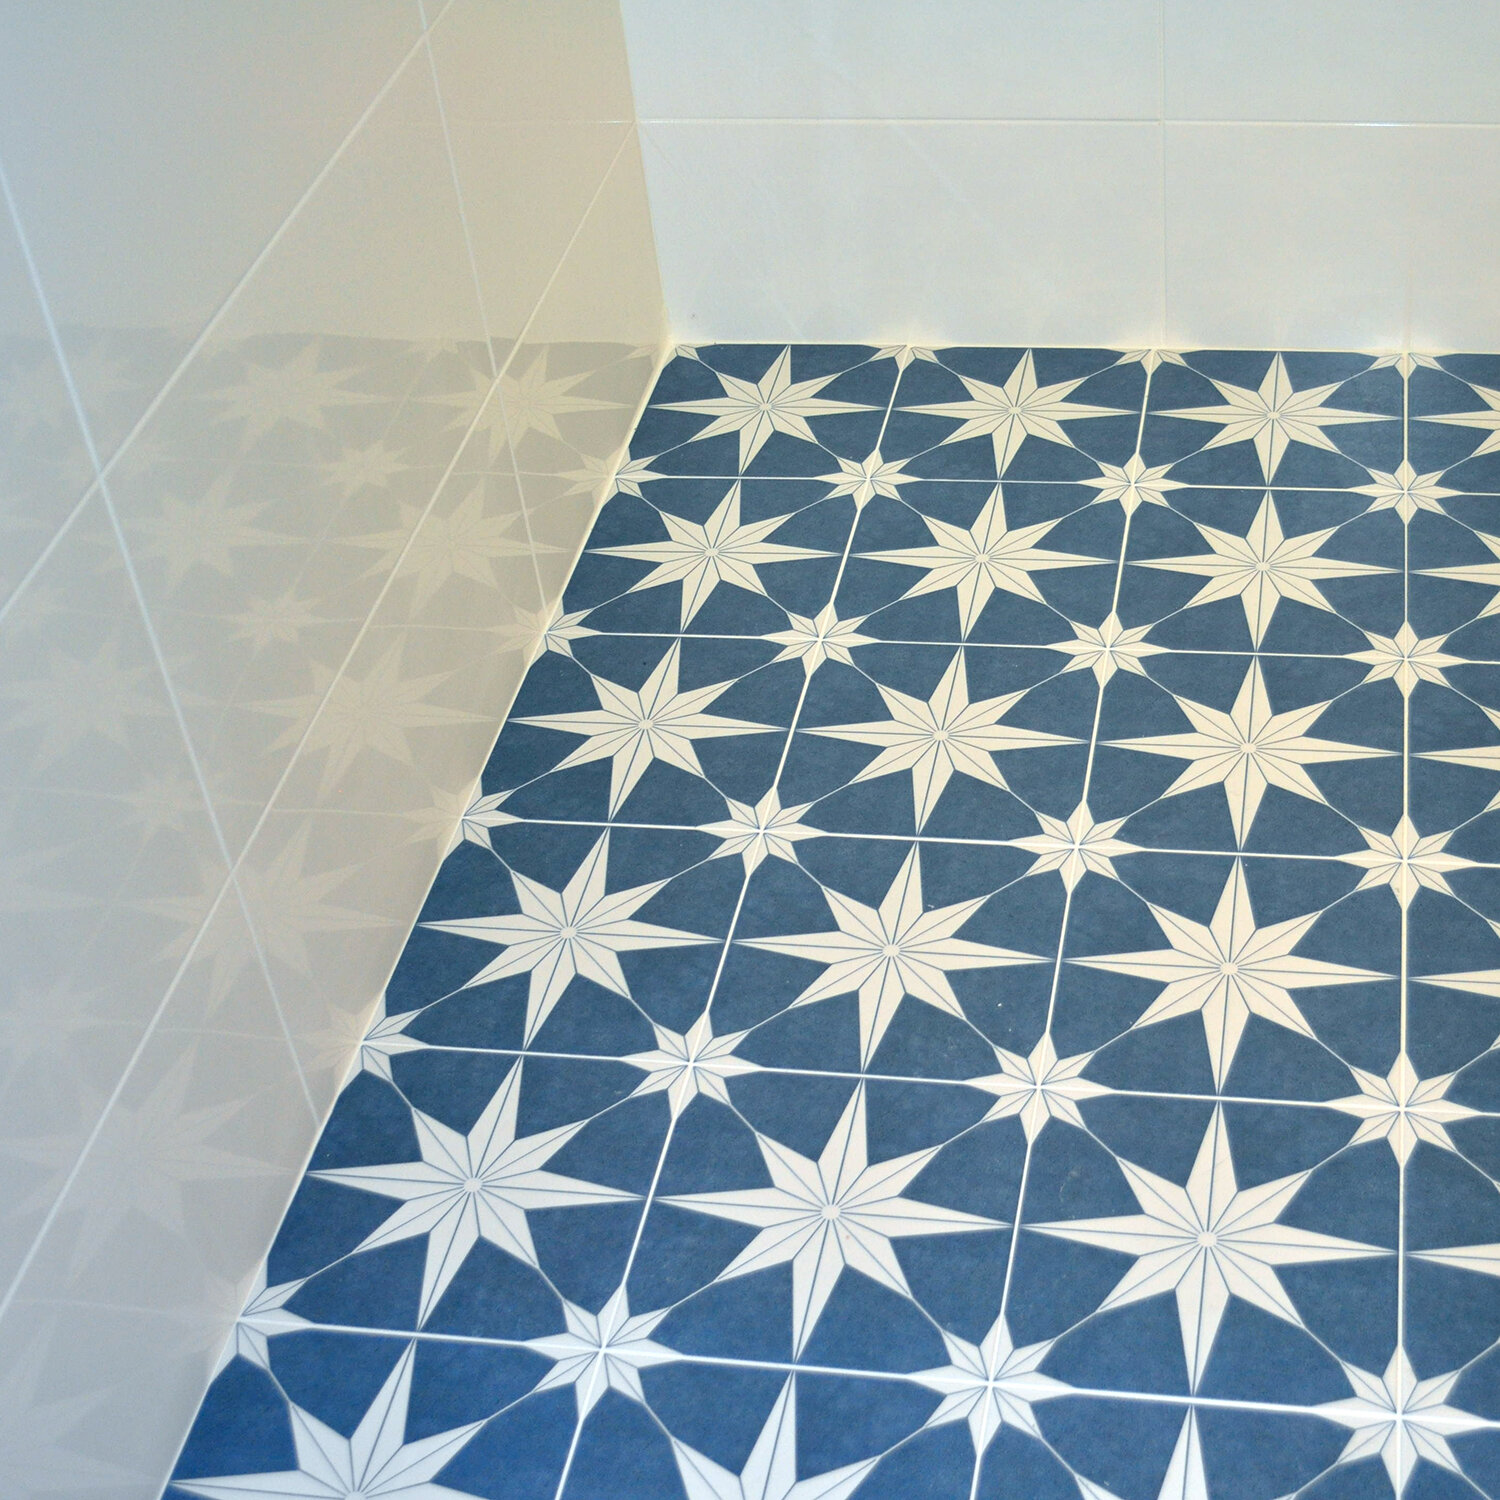 stella-and-brillo-tiles.jpg